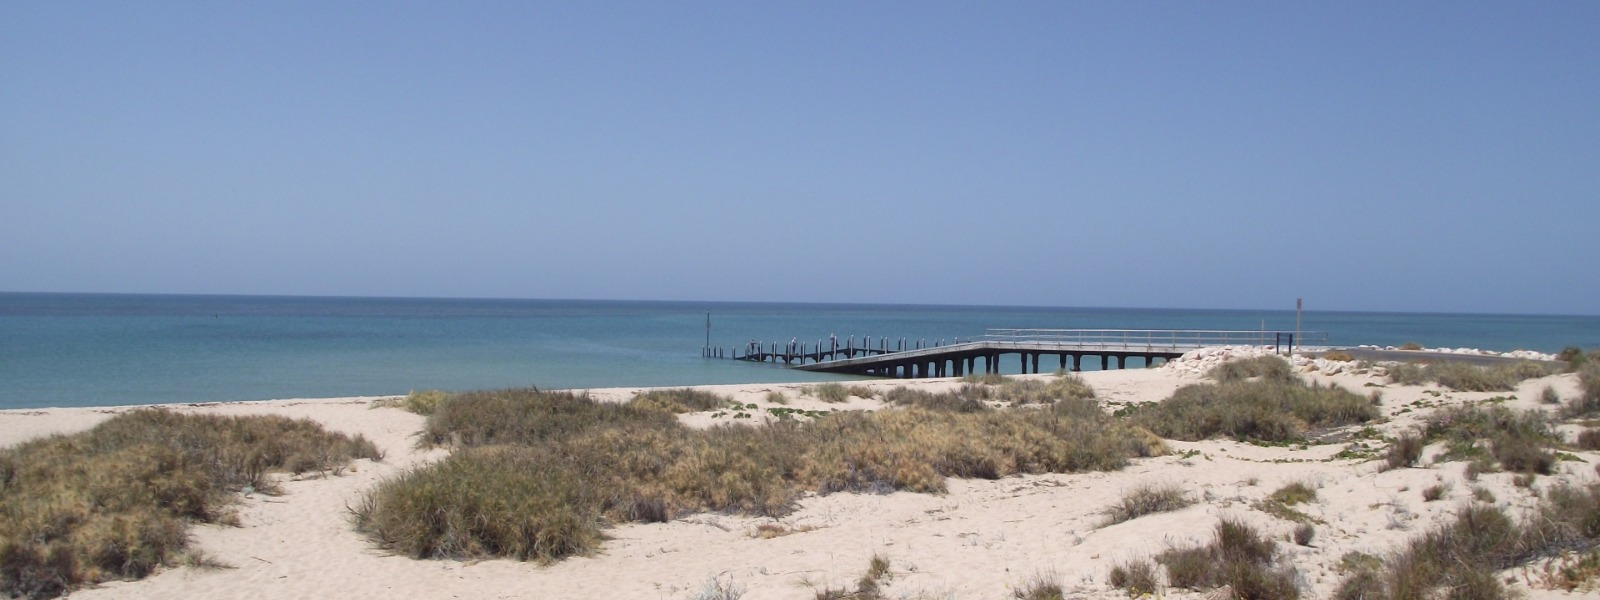 The beach in Exmouth, Western Australia